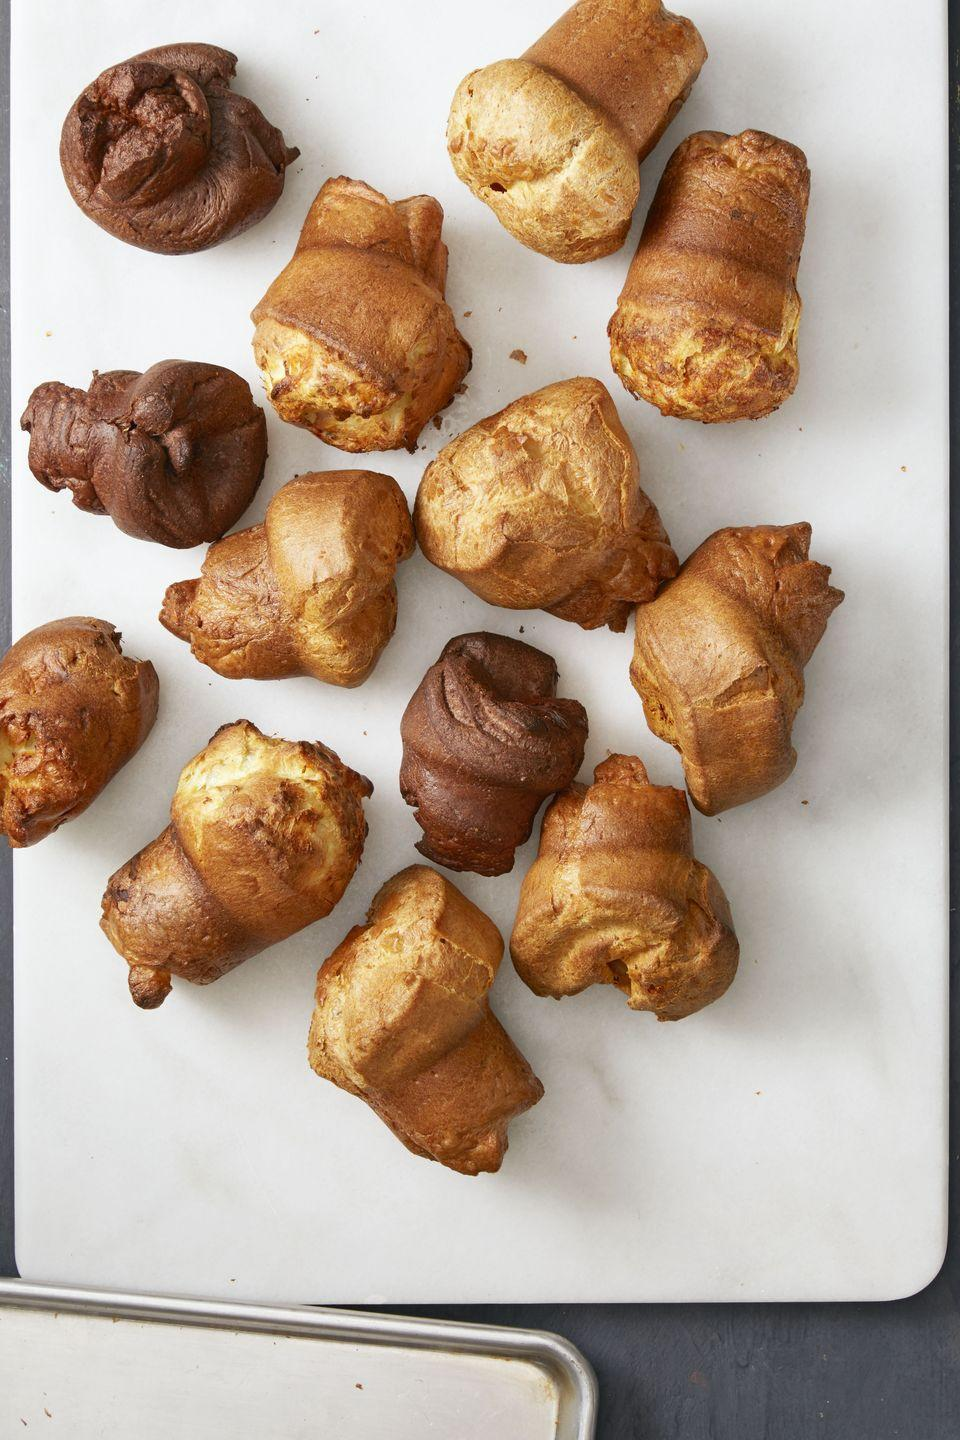 "<p>These guys are light, airy and porky. Basically everything we want in a breakfast pastry.</p><p><em><em><a href=""https://www.goodhousekeeping.com/food-recipes/easy/a35298/bacon-cheese-popovers/"" rel=""nofollow noopener"" target=""_blank"" data-ylk=""slk:Get the recipe for Bacon Cheese Popovers »"" class=""link rapid-noclick-resp"">Get the recipe for Bacon Cheese Popovers »</a></em></em></p>"